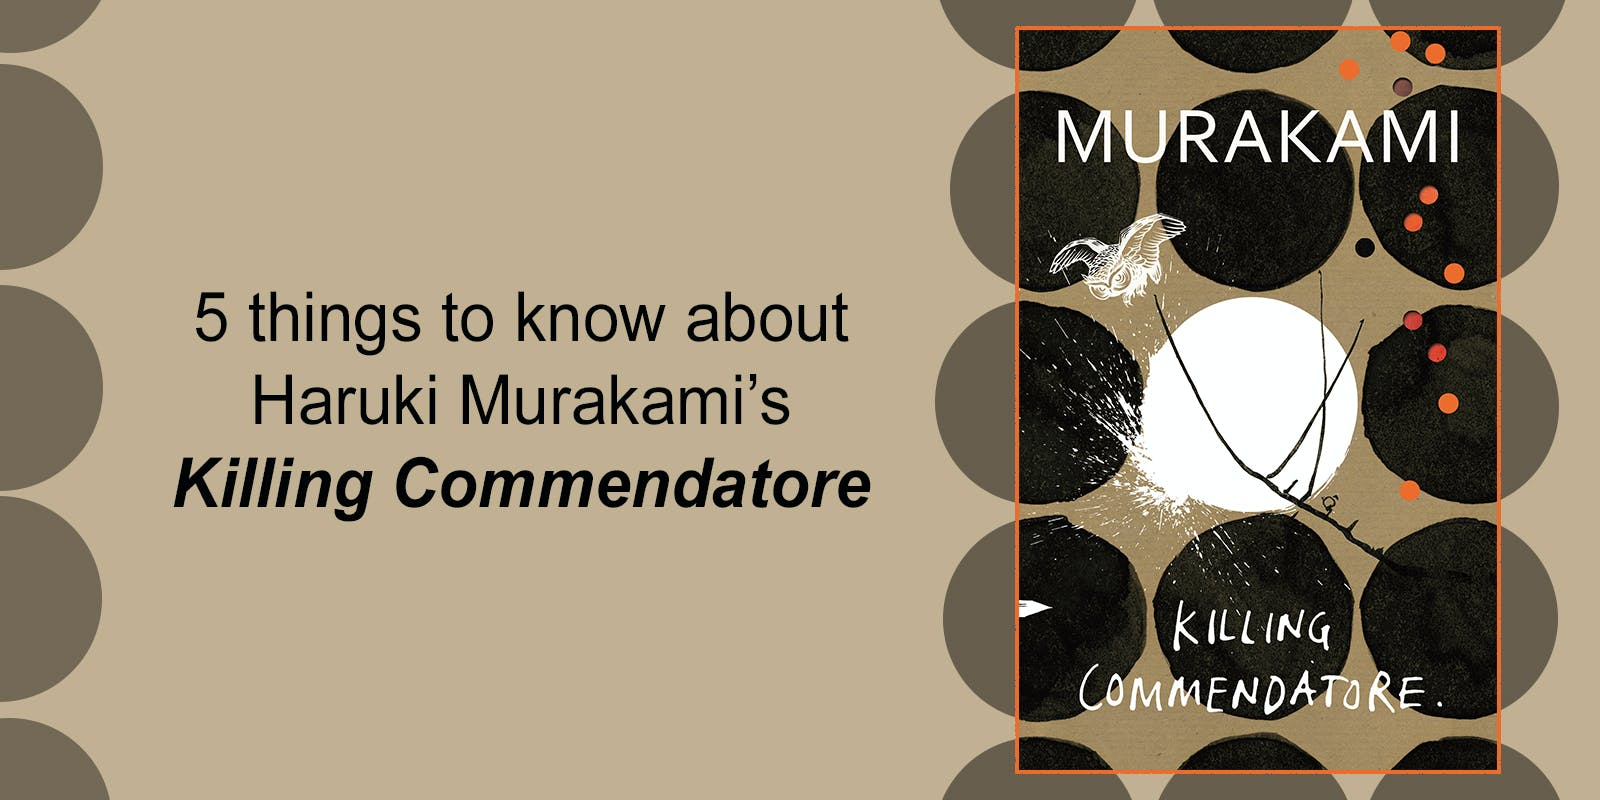 5 things to know about Haruki Murakami's Killing Commendatore